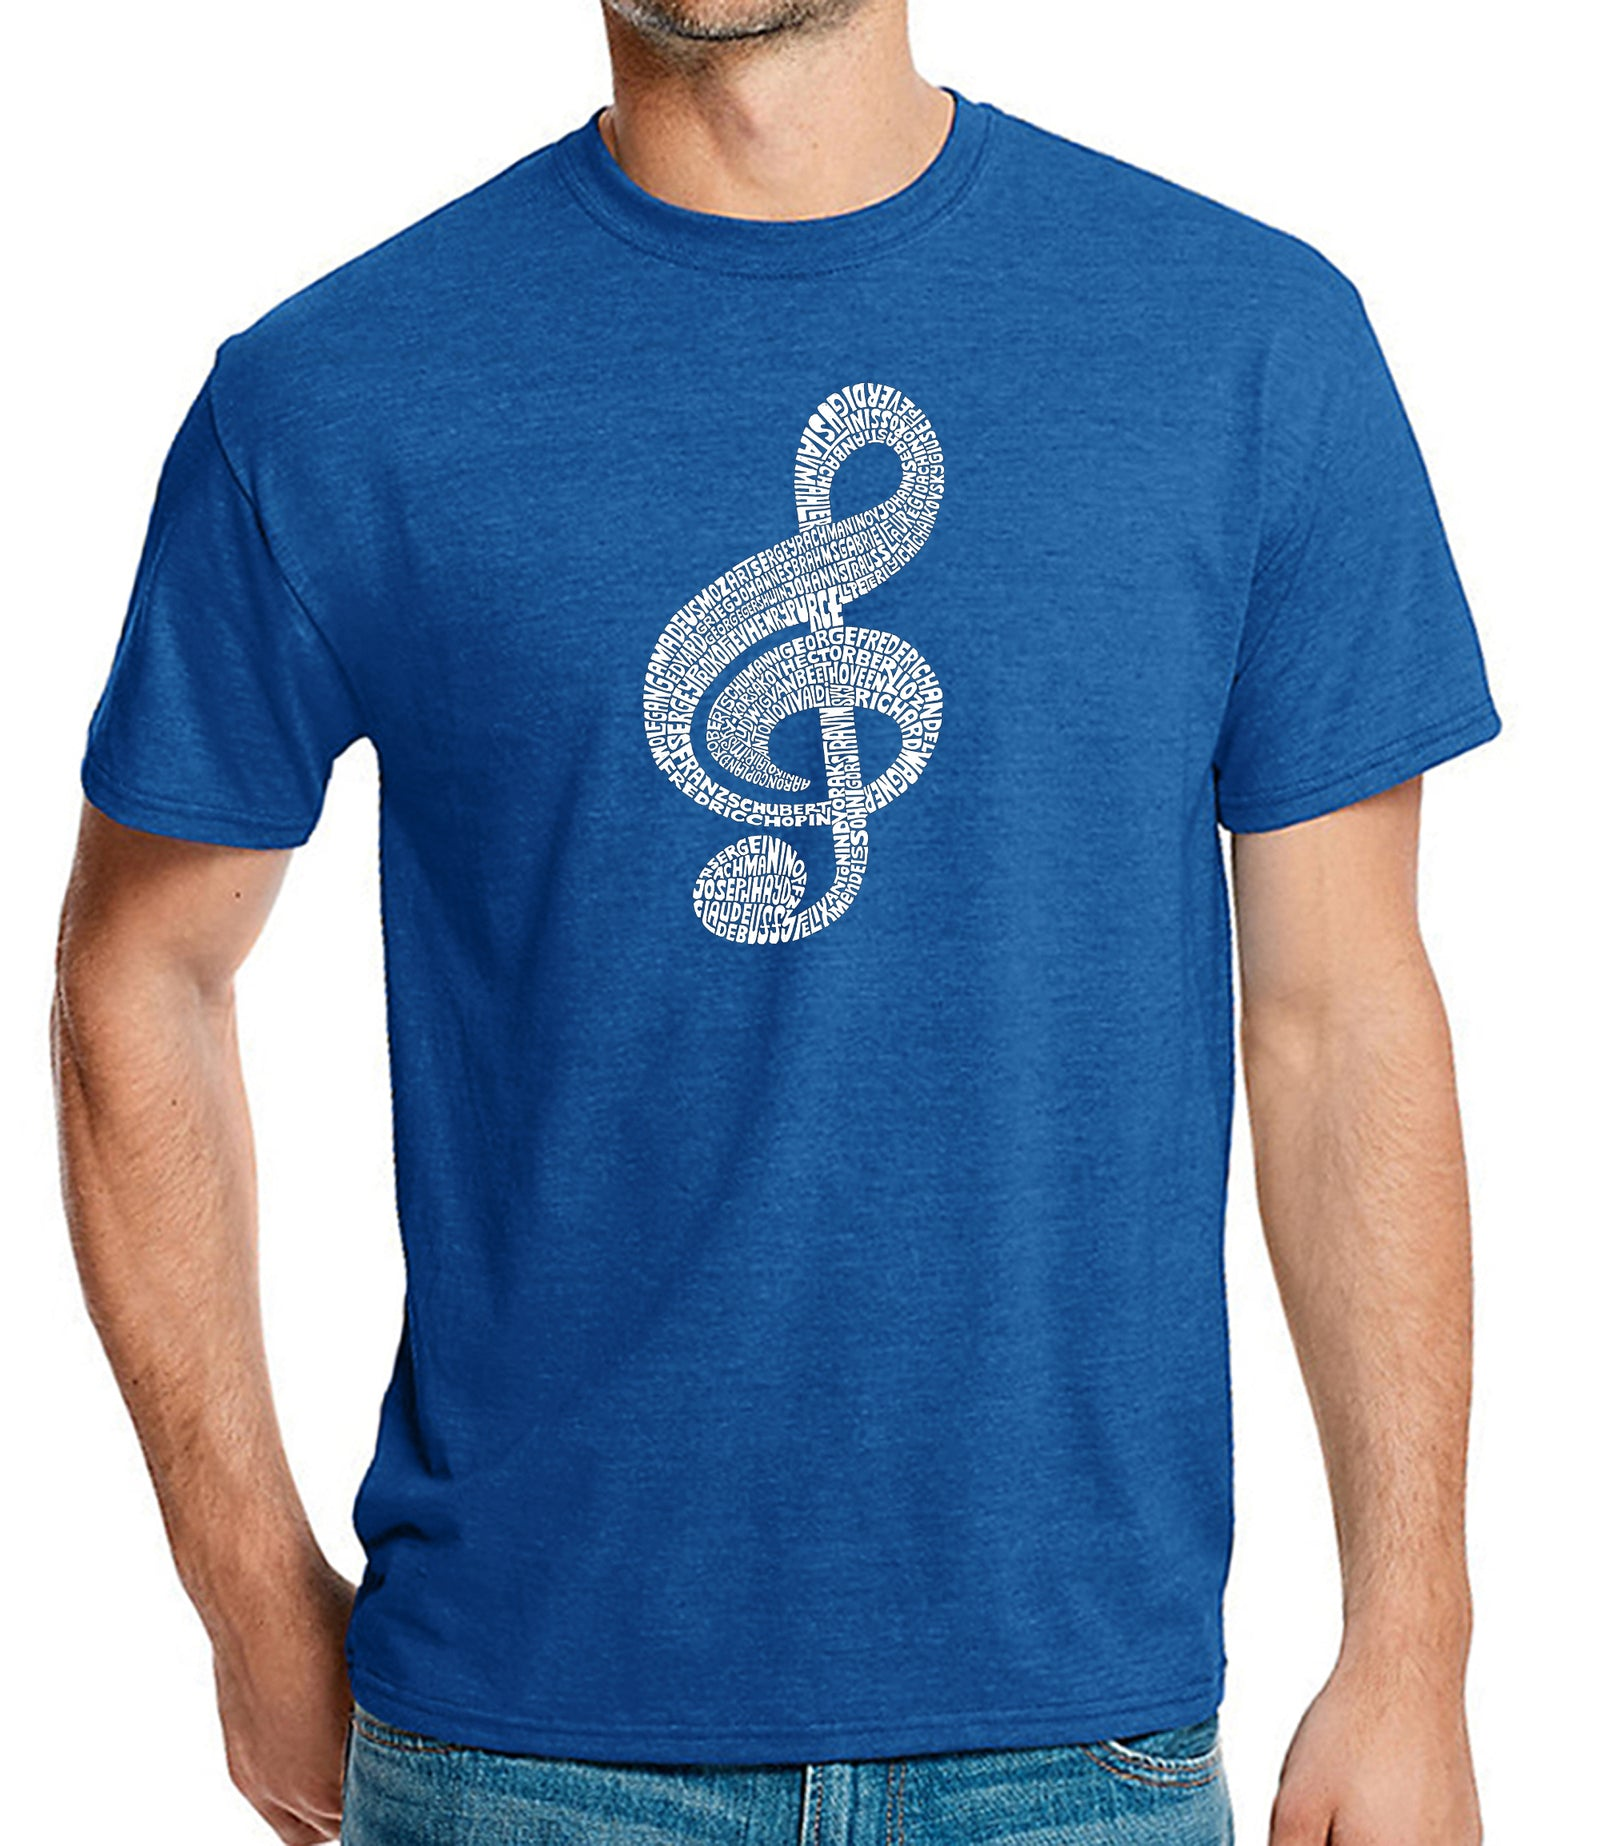 Men's Premium Blend Word Art T-shirt - Music Note